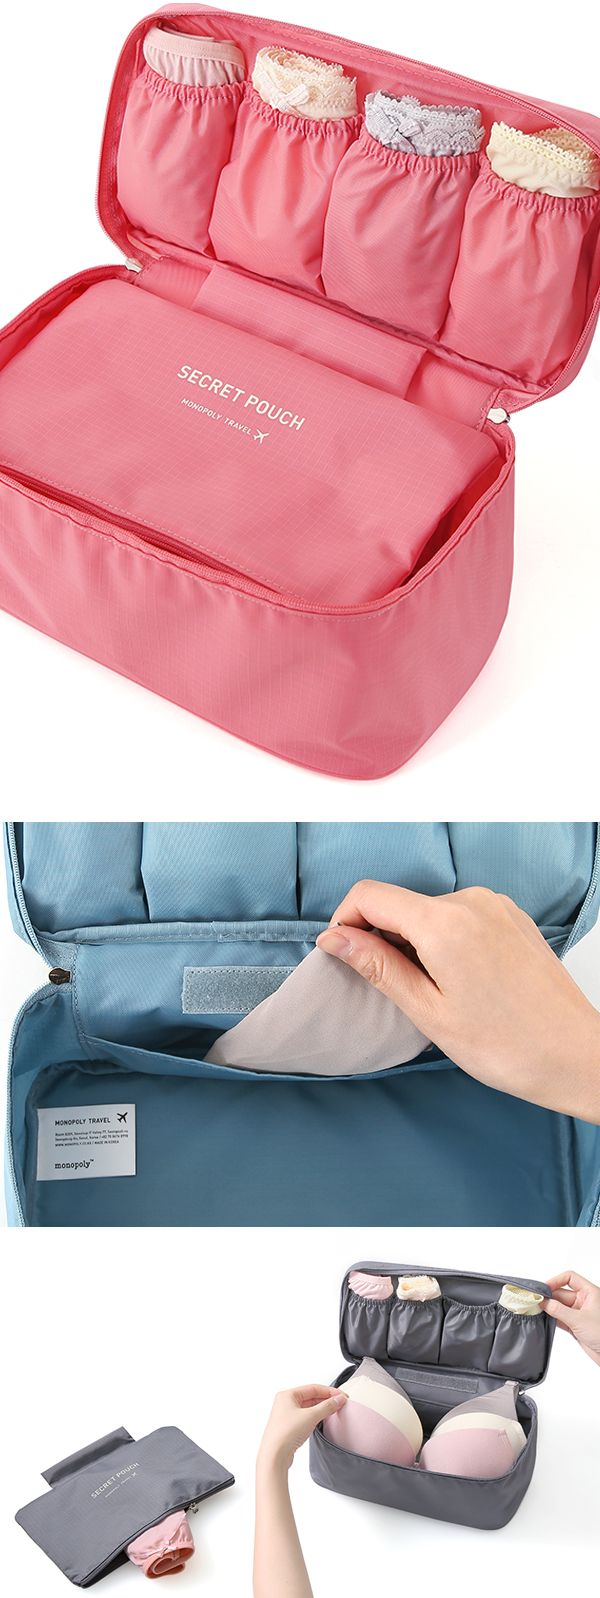 Let me share an awesome tip to pack your undies in a brilliant way for your next travel! The Underwear Pouch v2 features a spacious compartment, useful pockets and a detachable pouch that is suitable for various purposes, and all the features will be great help to organize your underwear and items more easily and efficiently!